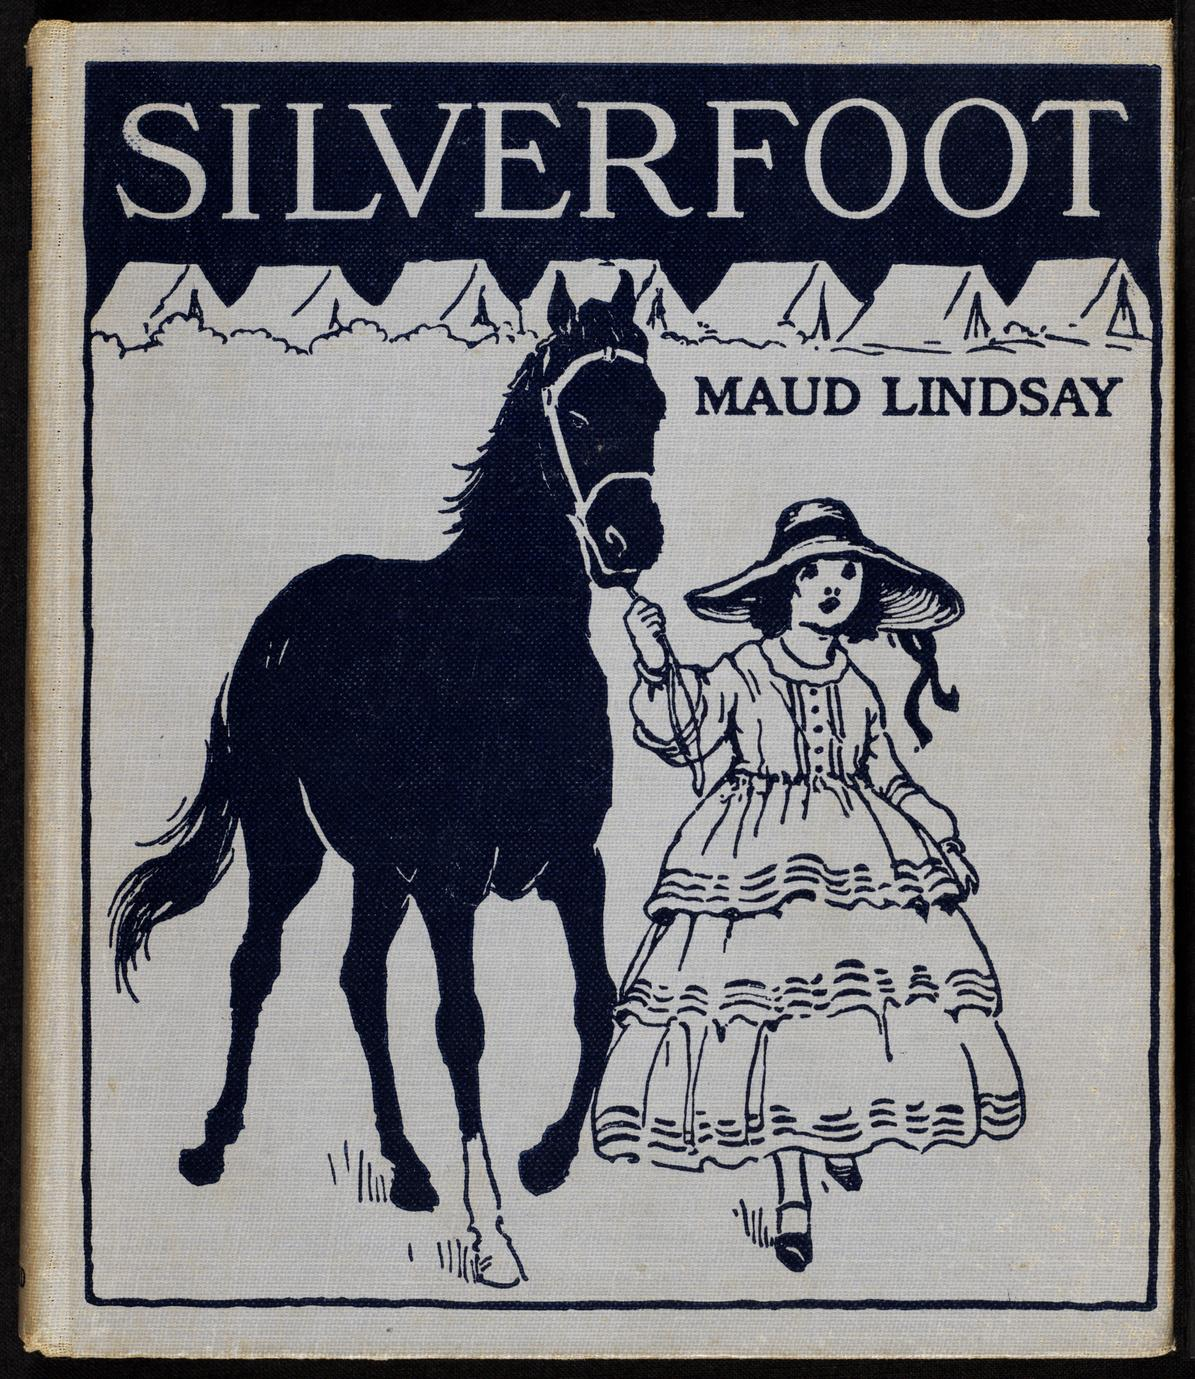 Silverfoot (1 of 2)